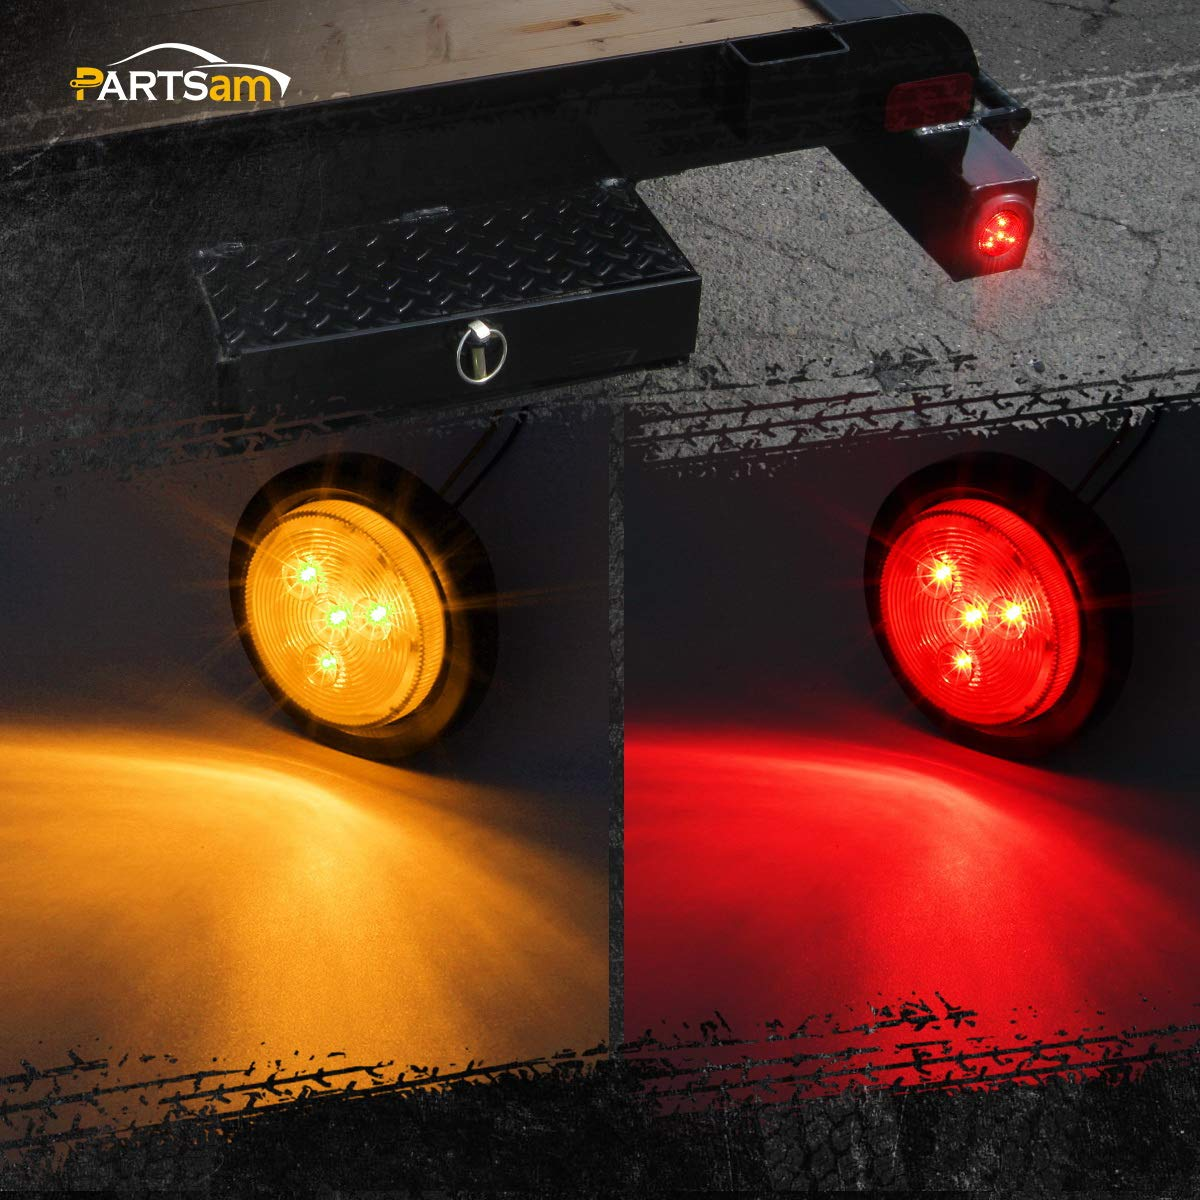 Partsam 2 Amber Red Truck Trailer 25 Round Side Led Clearance Marker Light With Reflector Wire 4led 12v Automotive